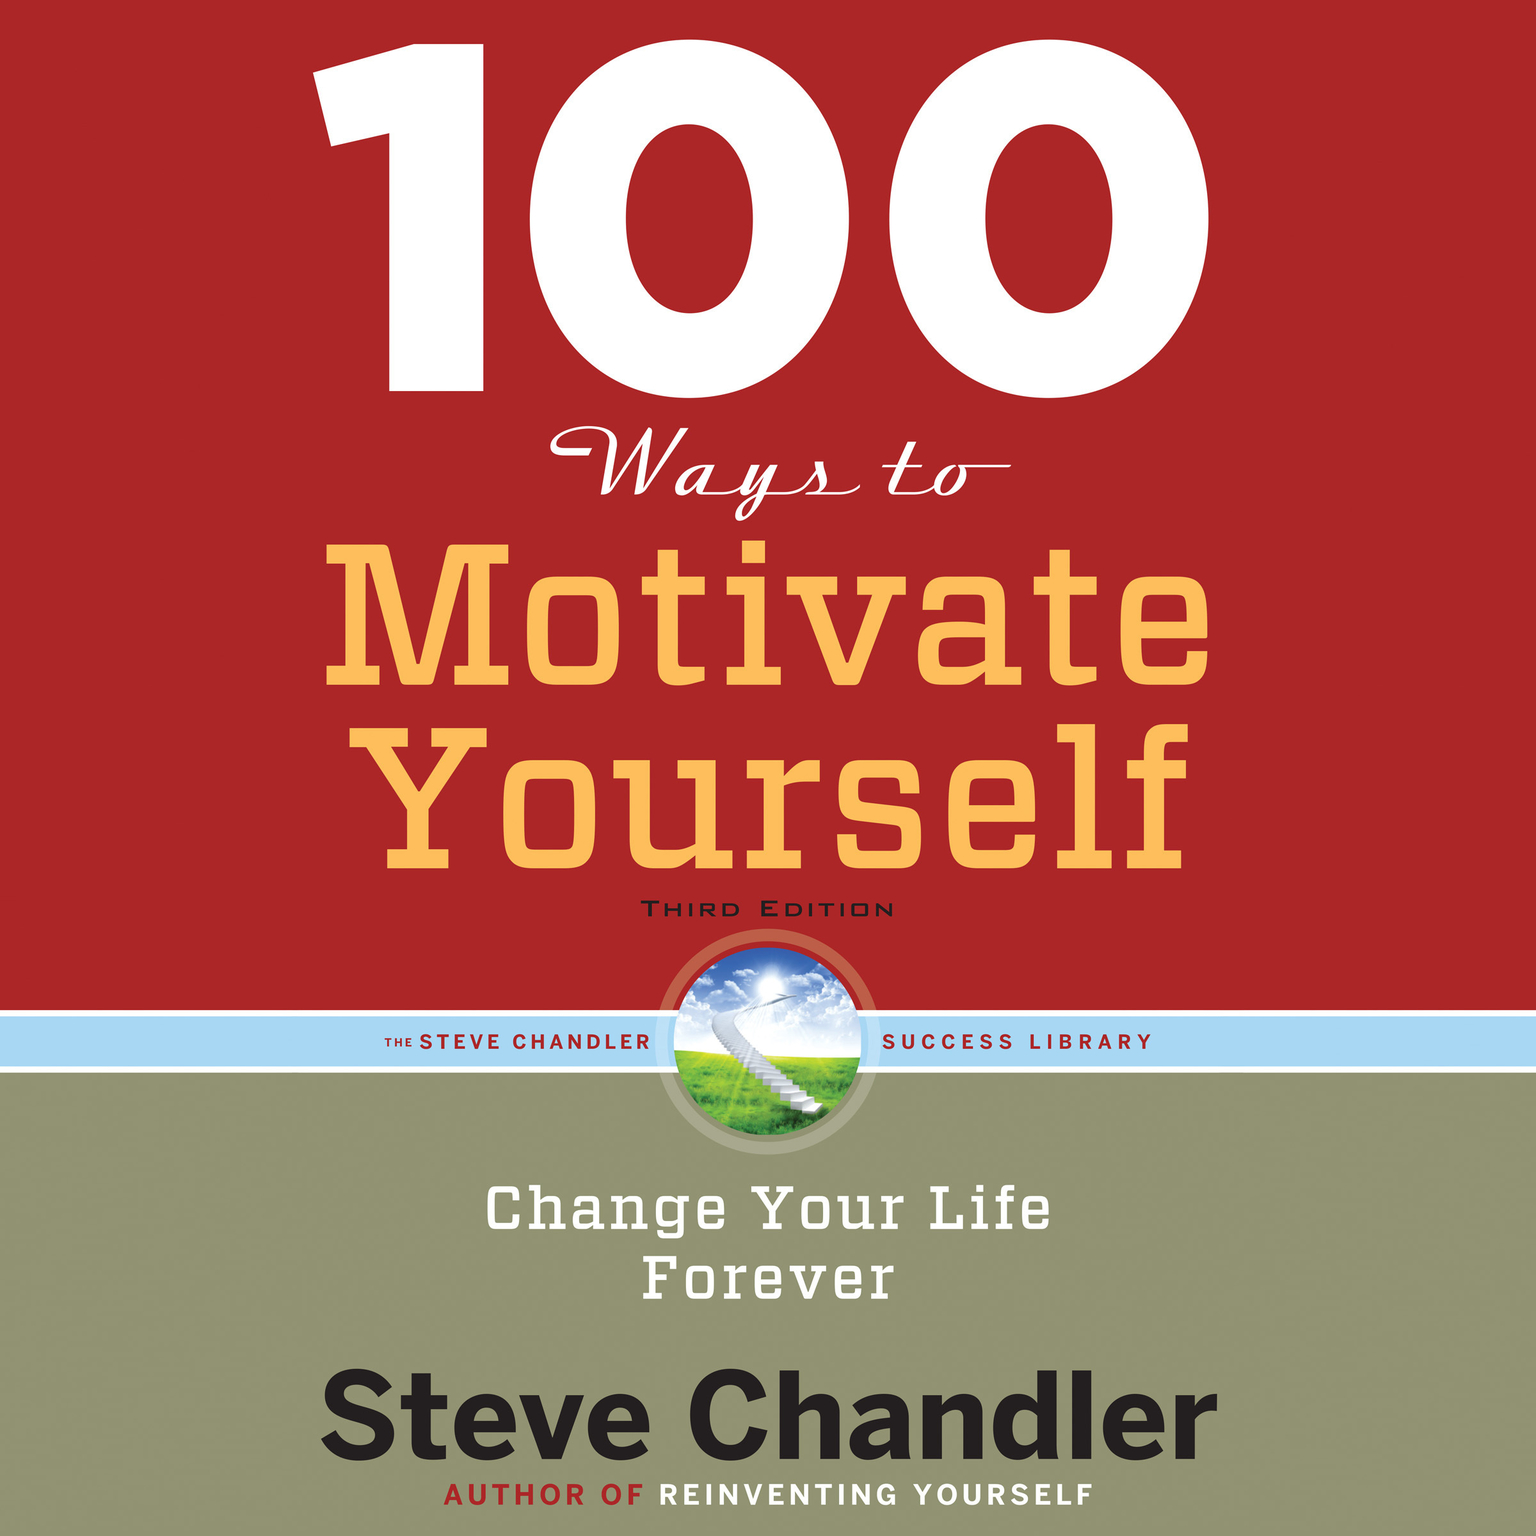 100 Ways to Motivate Yourself, Third Edition: Change Your Life Forever  Audiobook, by